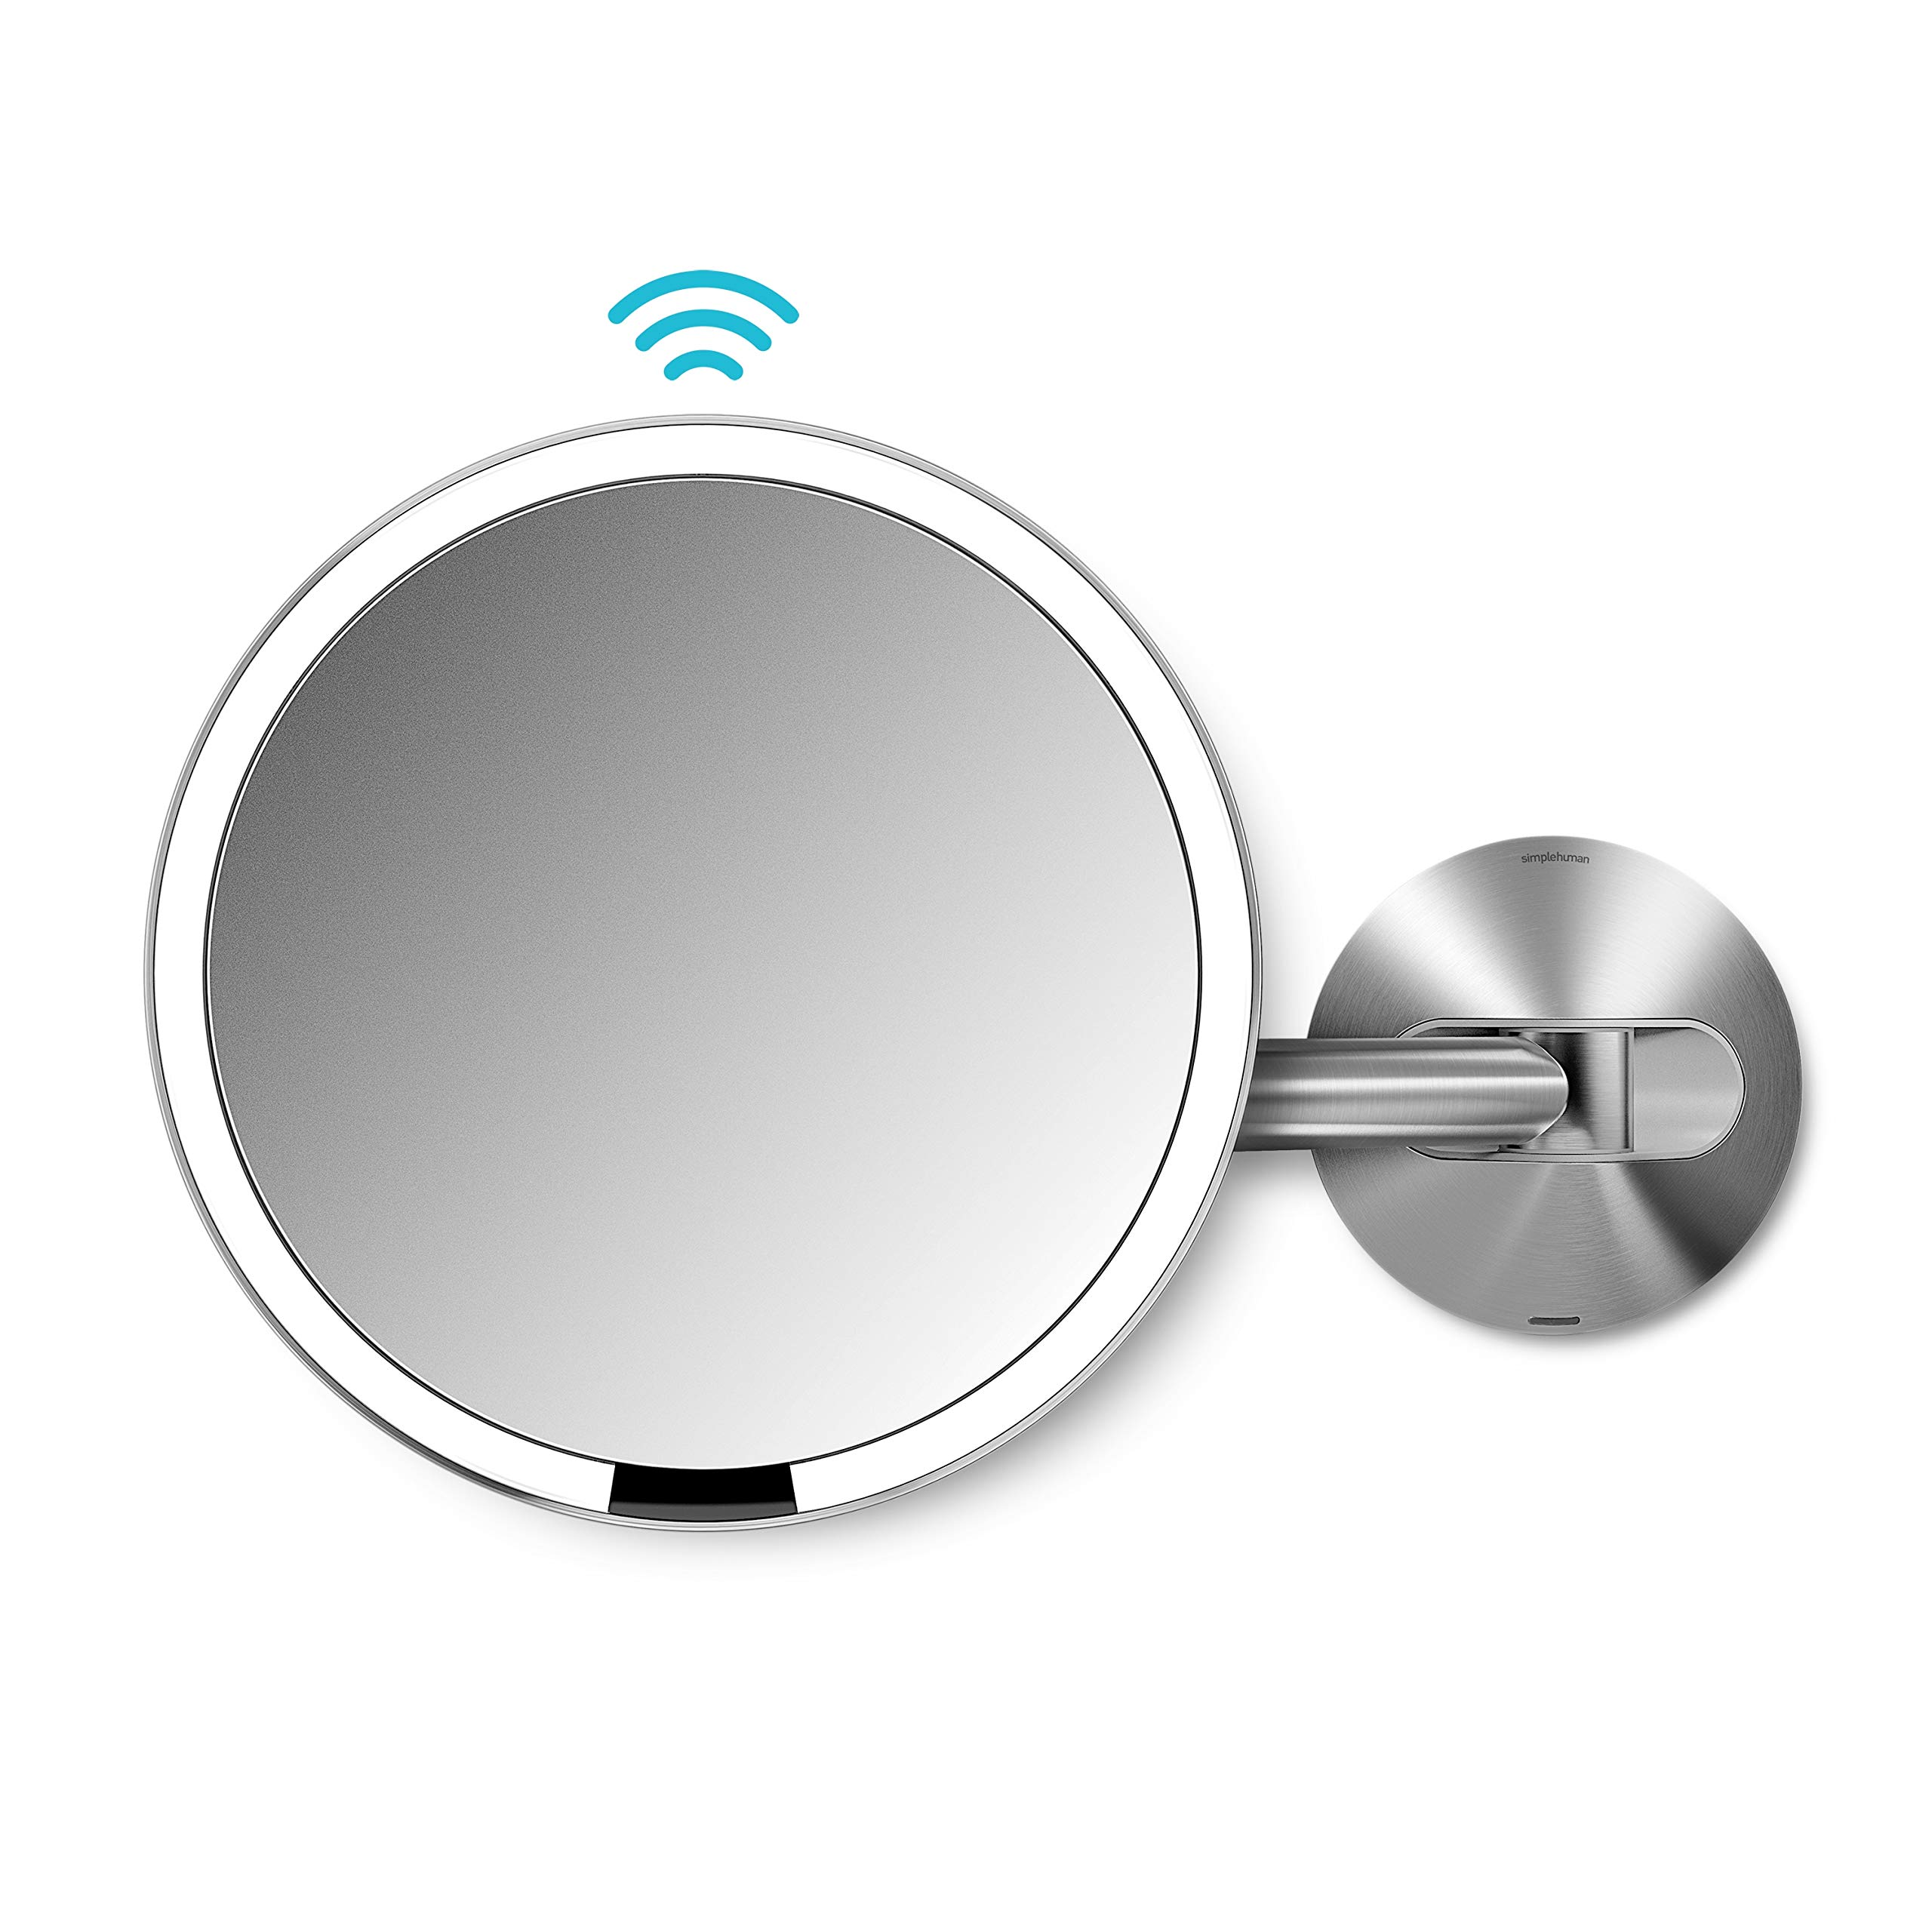 simplehuman 8 inch Wall Mount Sensor Mirror - Sensor-Activated Lighted Vanity Mirror, 5x Magnification, 8 inches